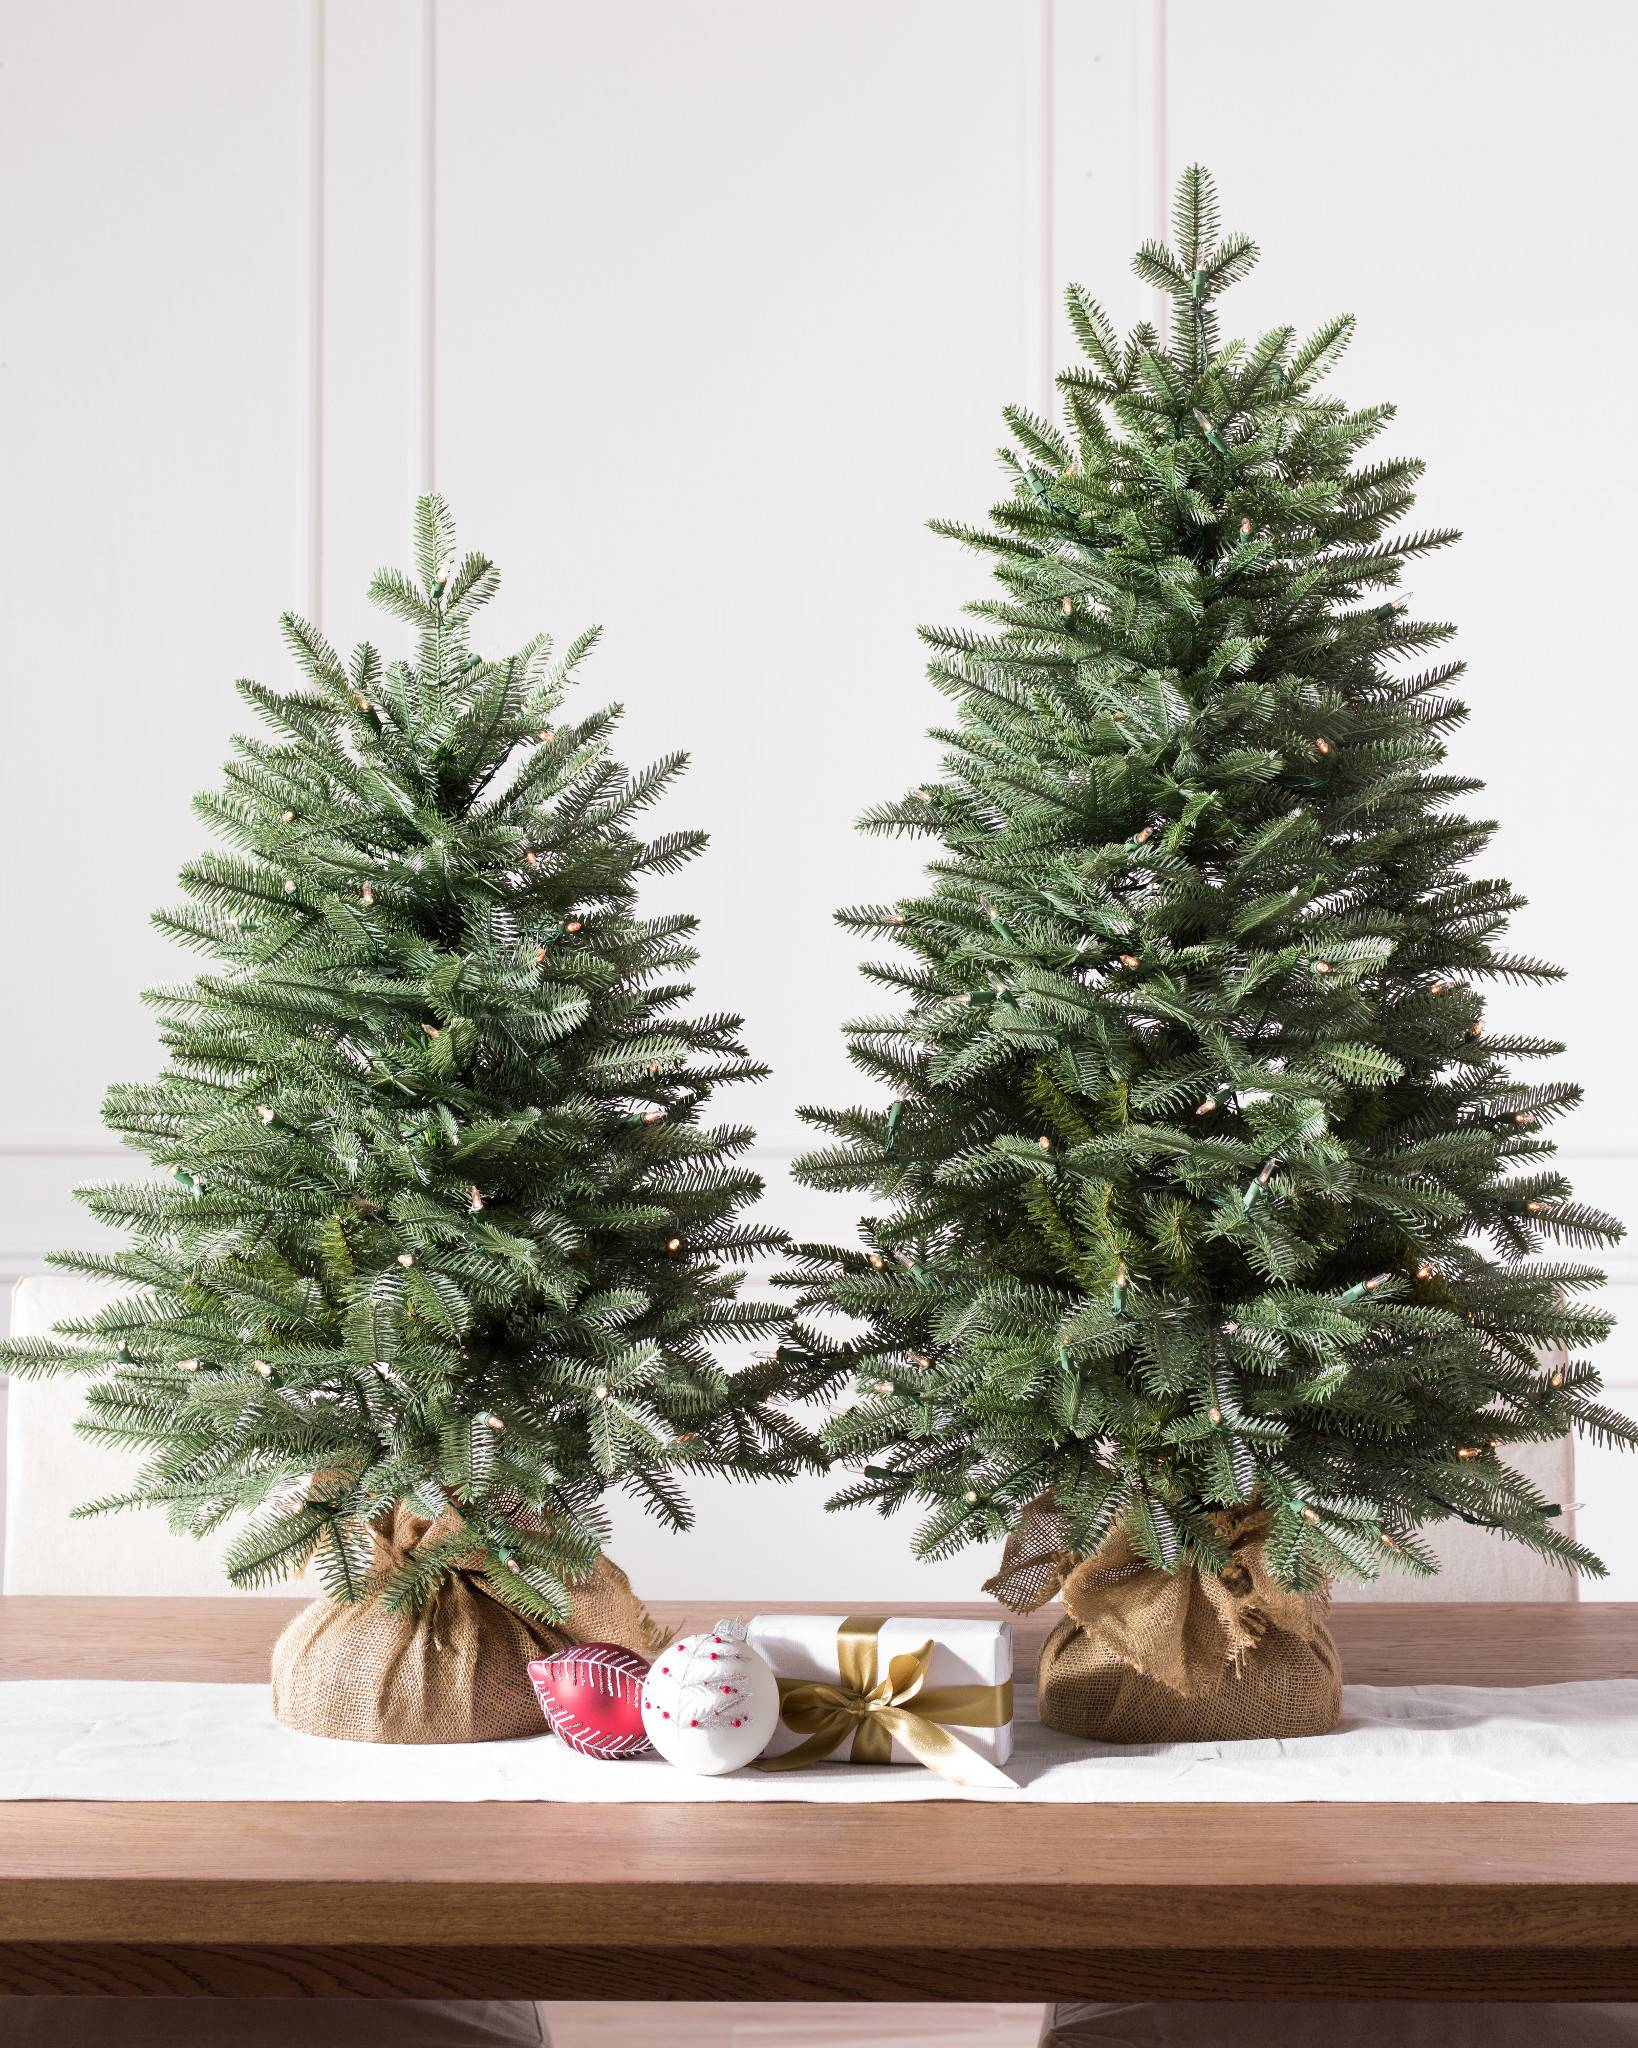 Bh Balsam Fir Tabletop Tree